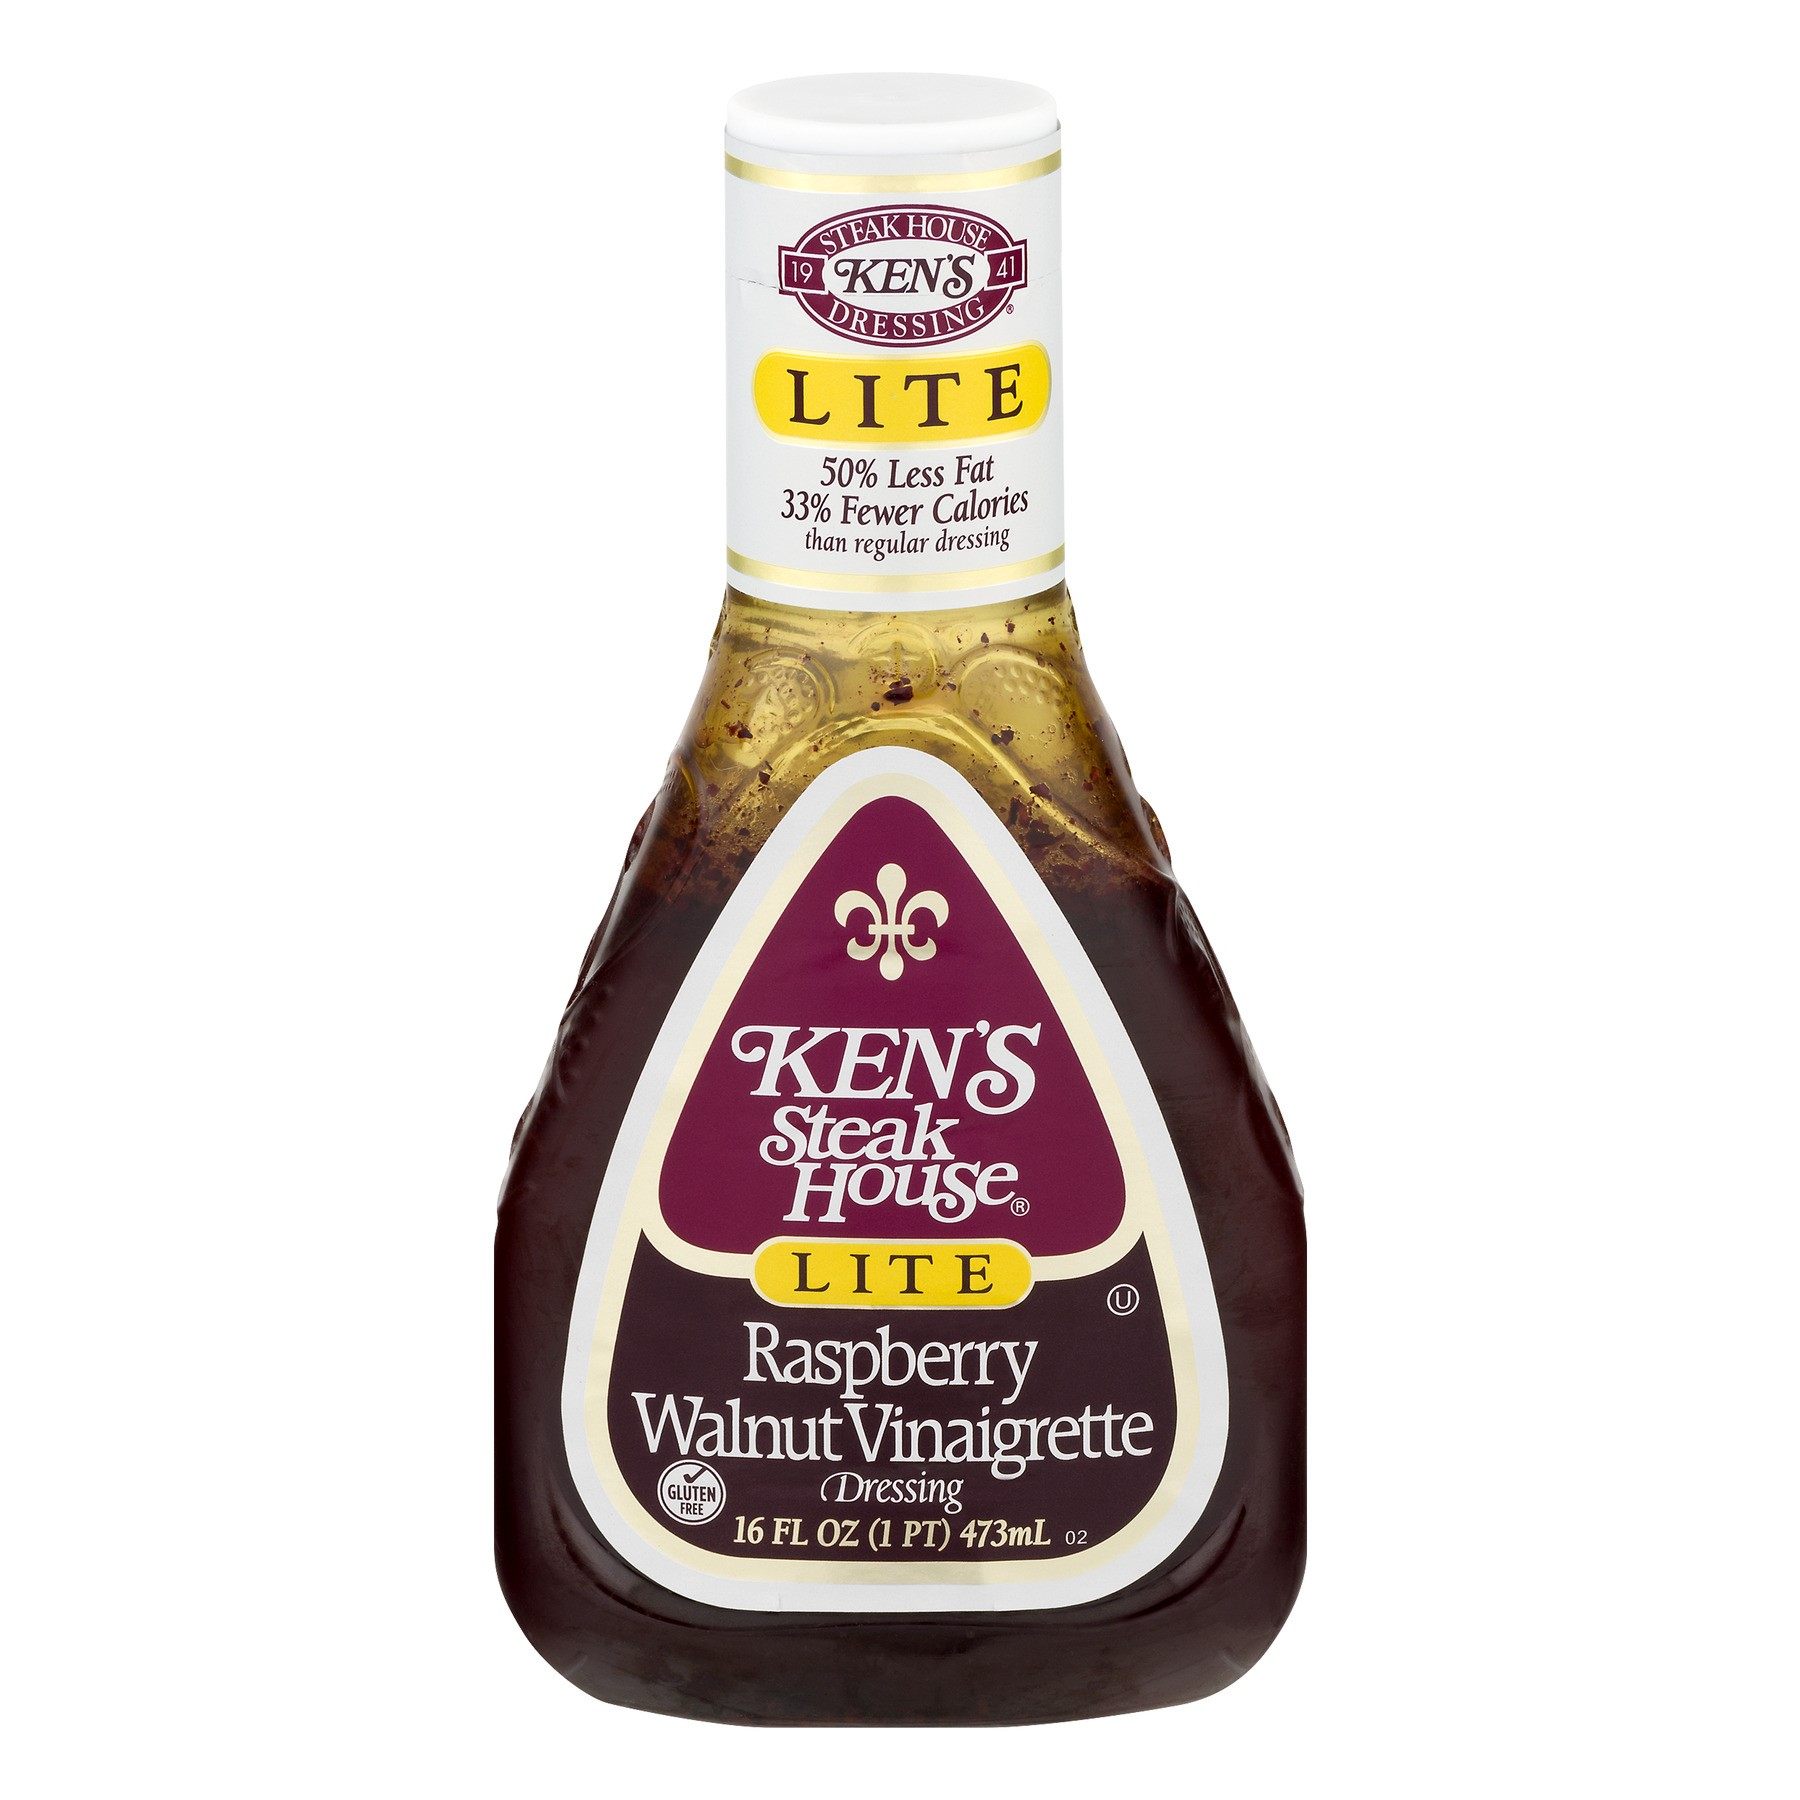 (3 Pack) Ken's Steak House Raspberry Walnut Vinaigrette Dressing Lite 16 Oz Plastic Bottle